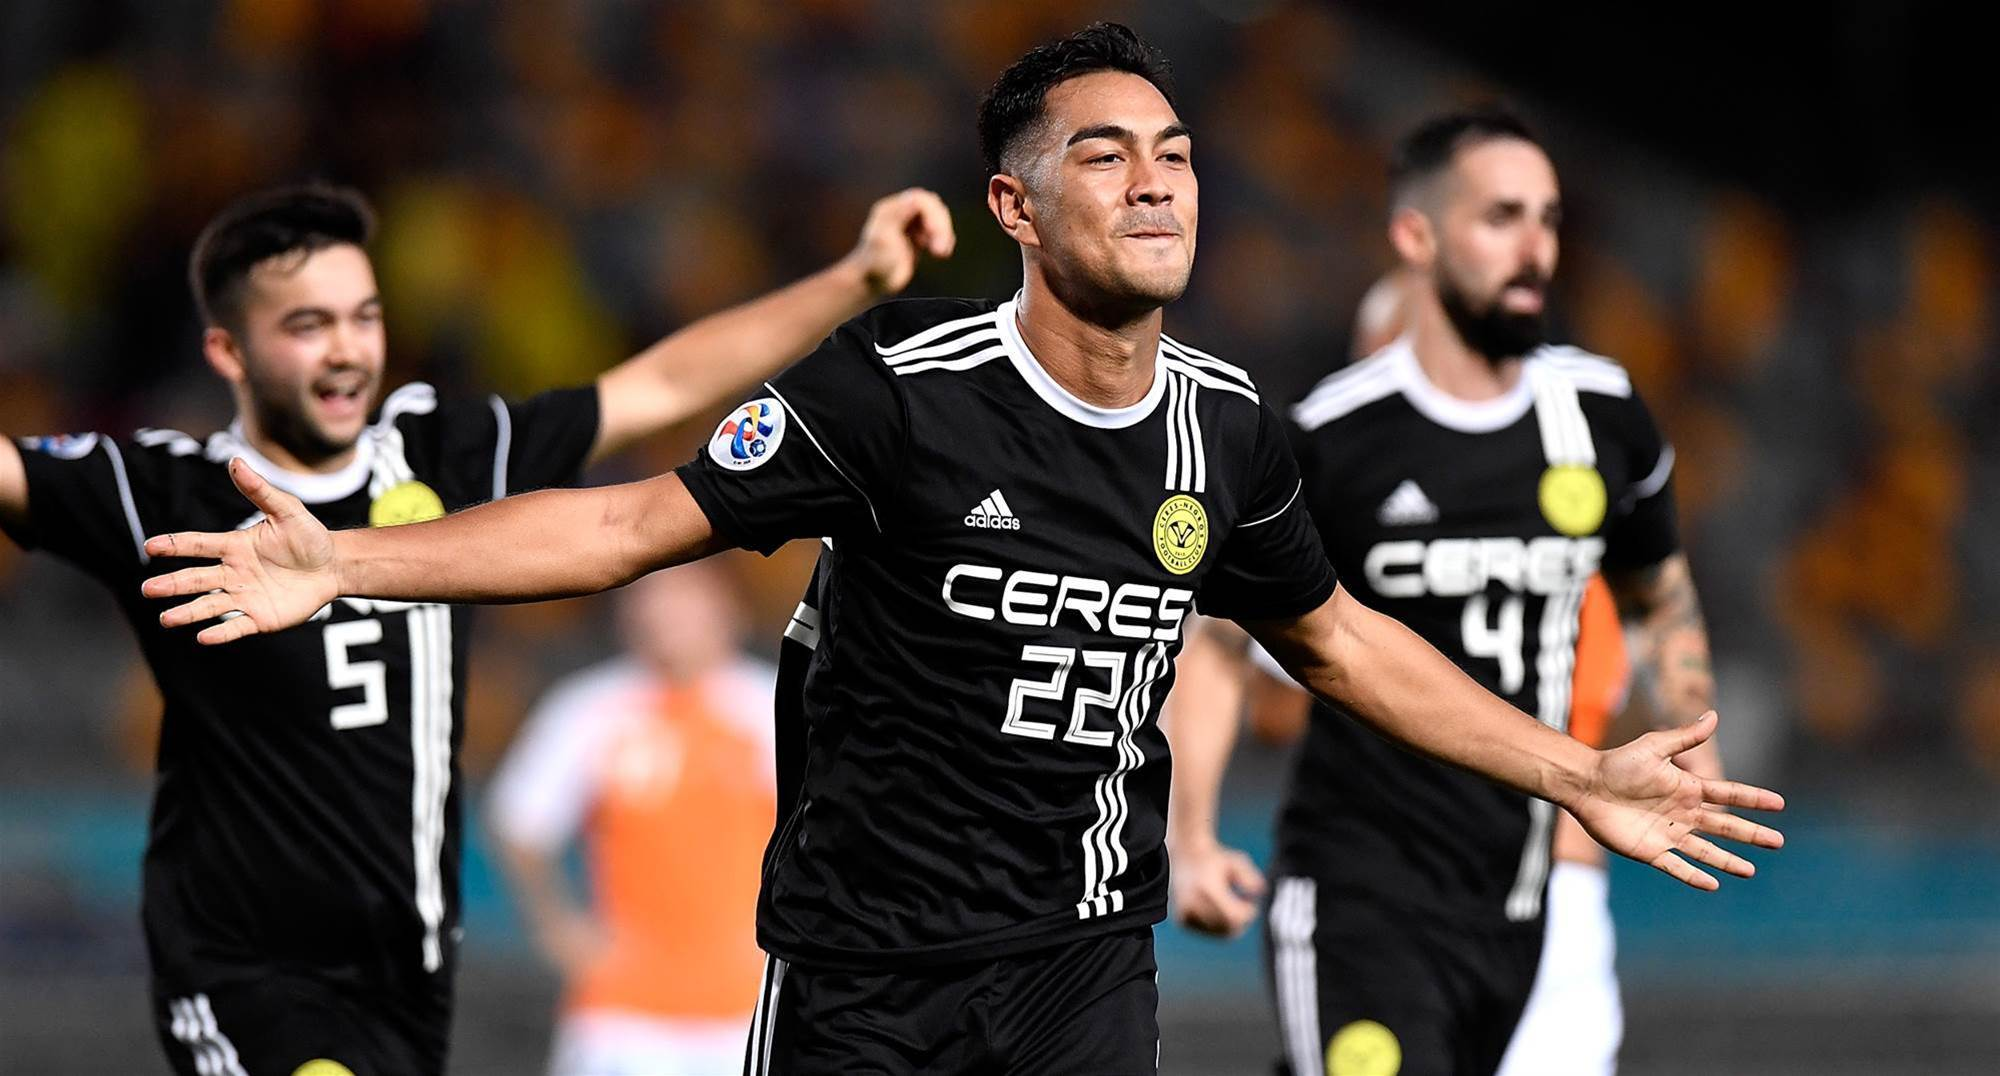 ACL: Brisbane Roar v Ceres-Negros player ratings